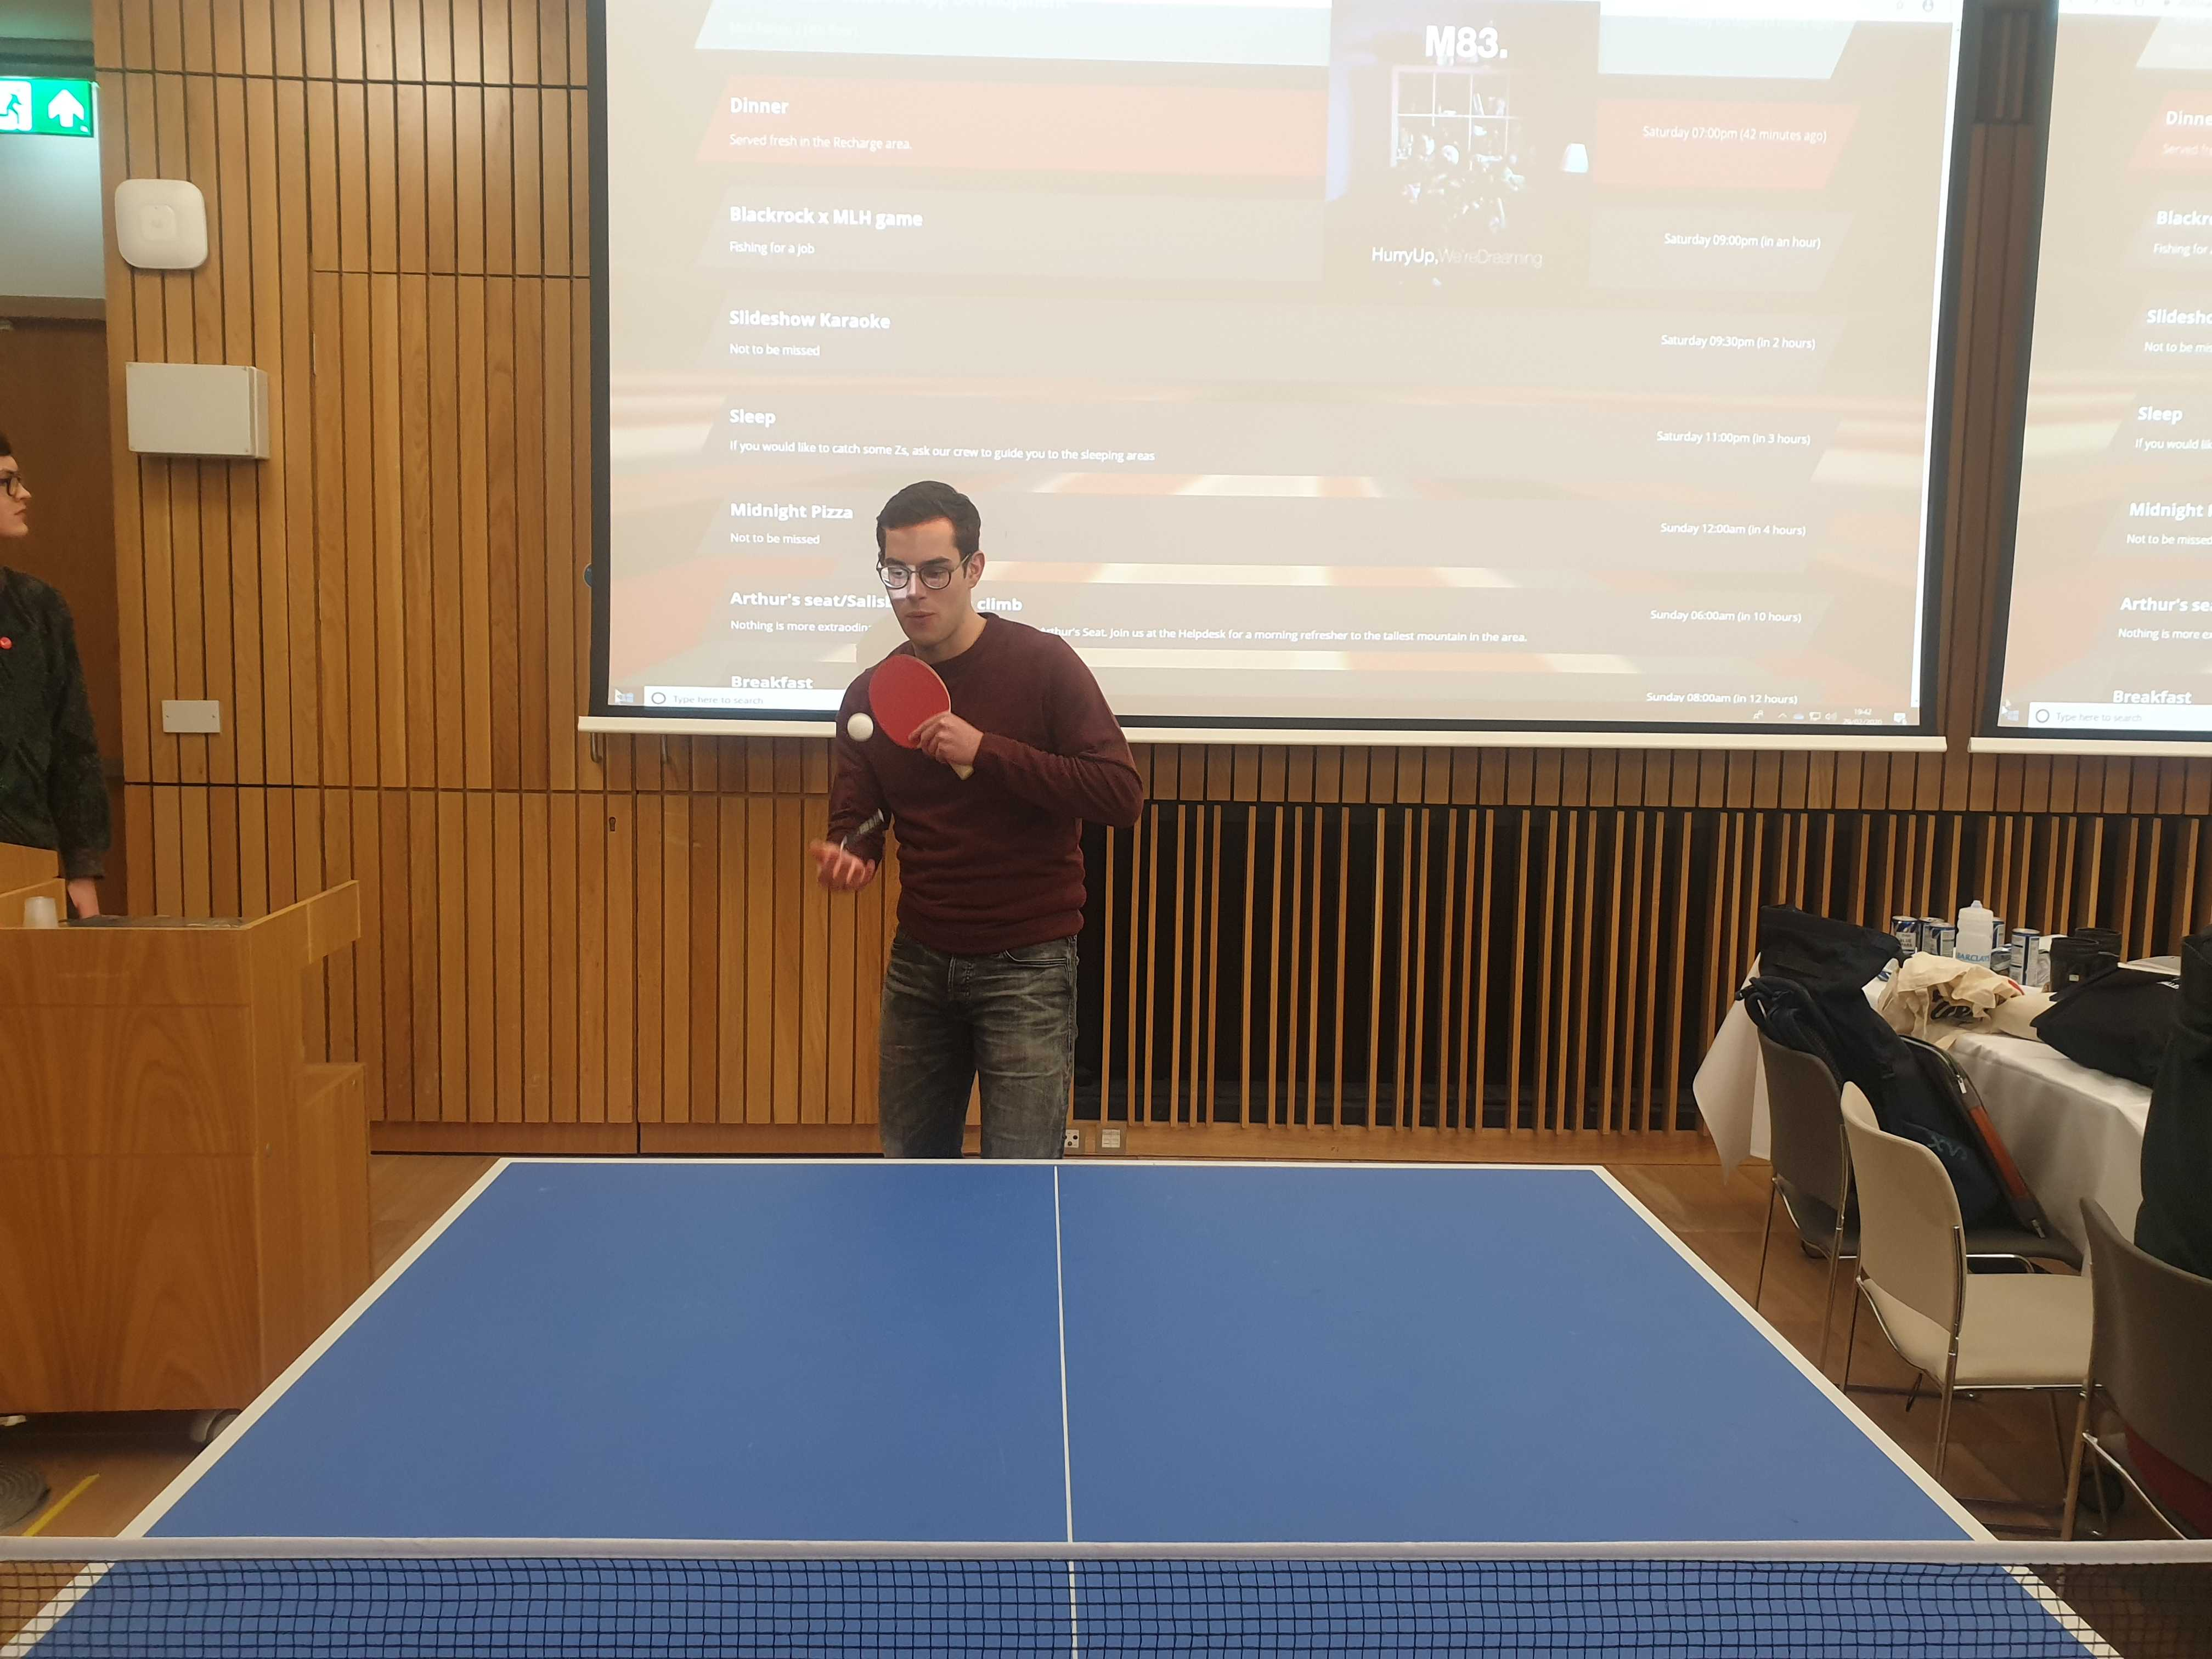 Marius and Charlie playing table tennis